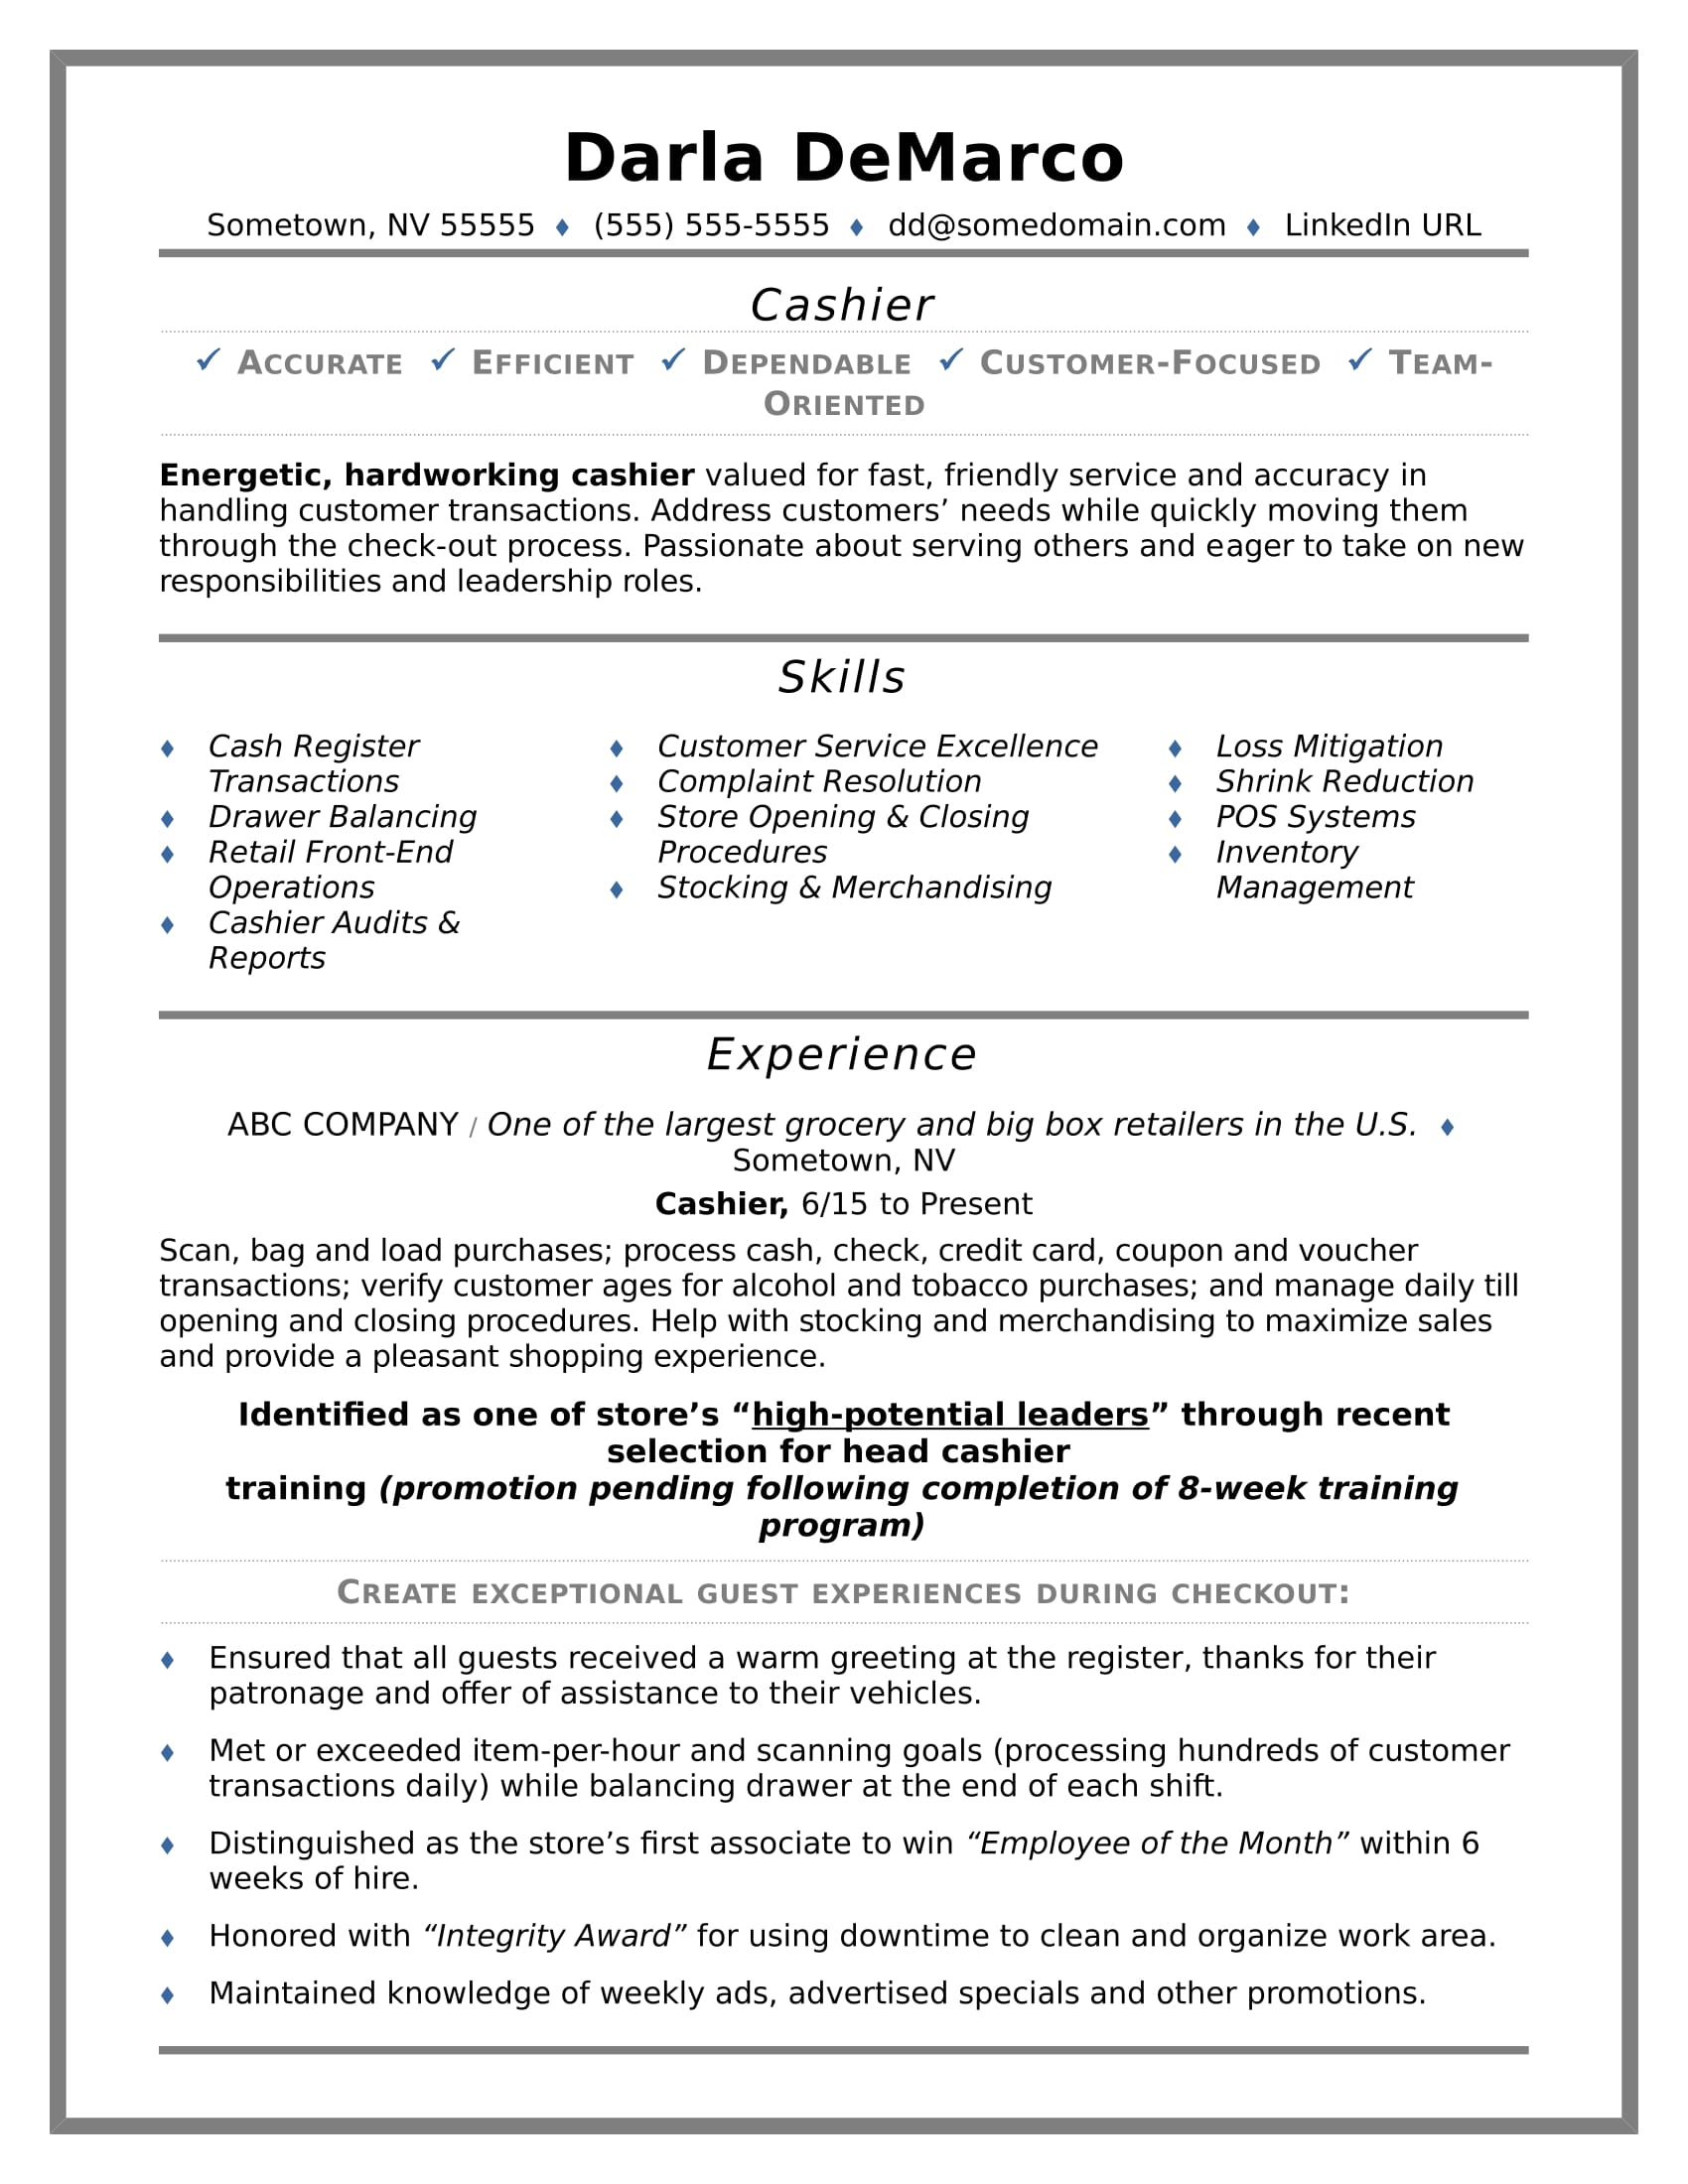 Cashier Resume Sample  Cashier Resume Job Description